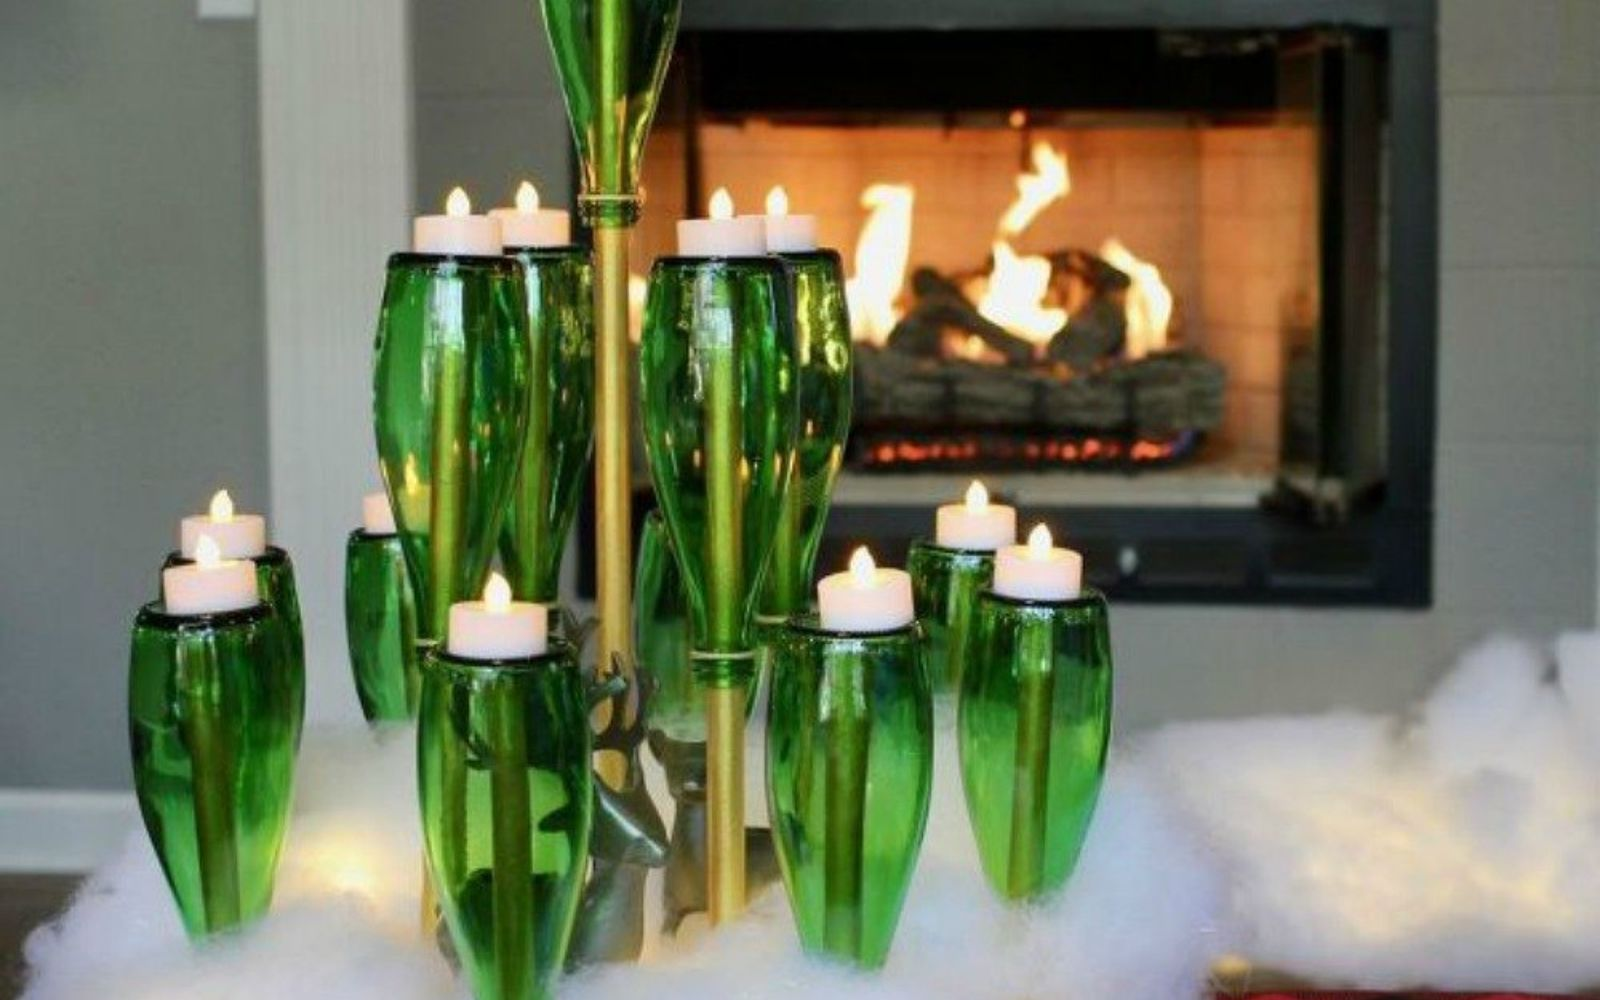 s forget your traditional christmas tree these are even better, Turn your green beer bottles upside down